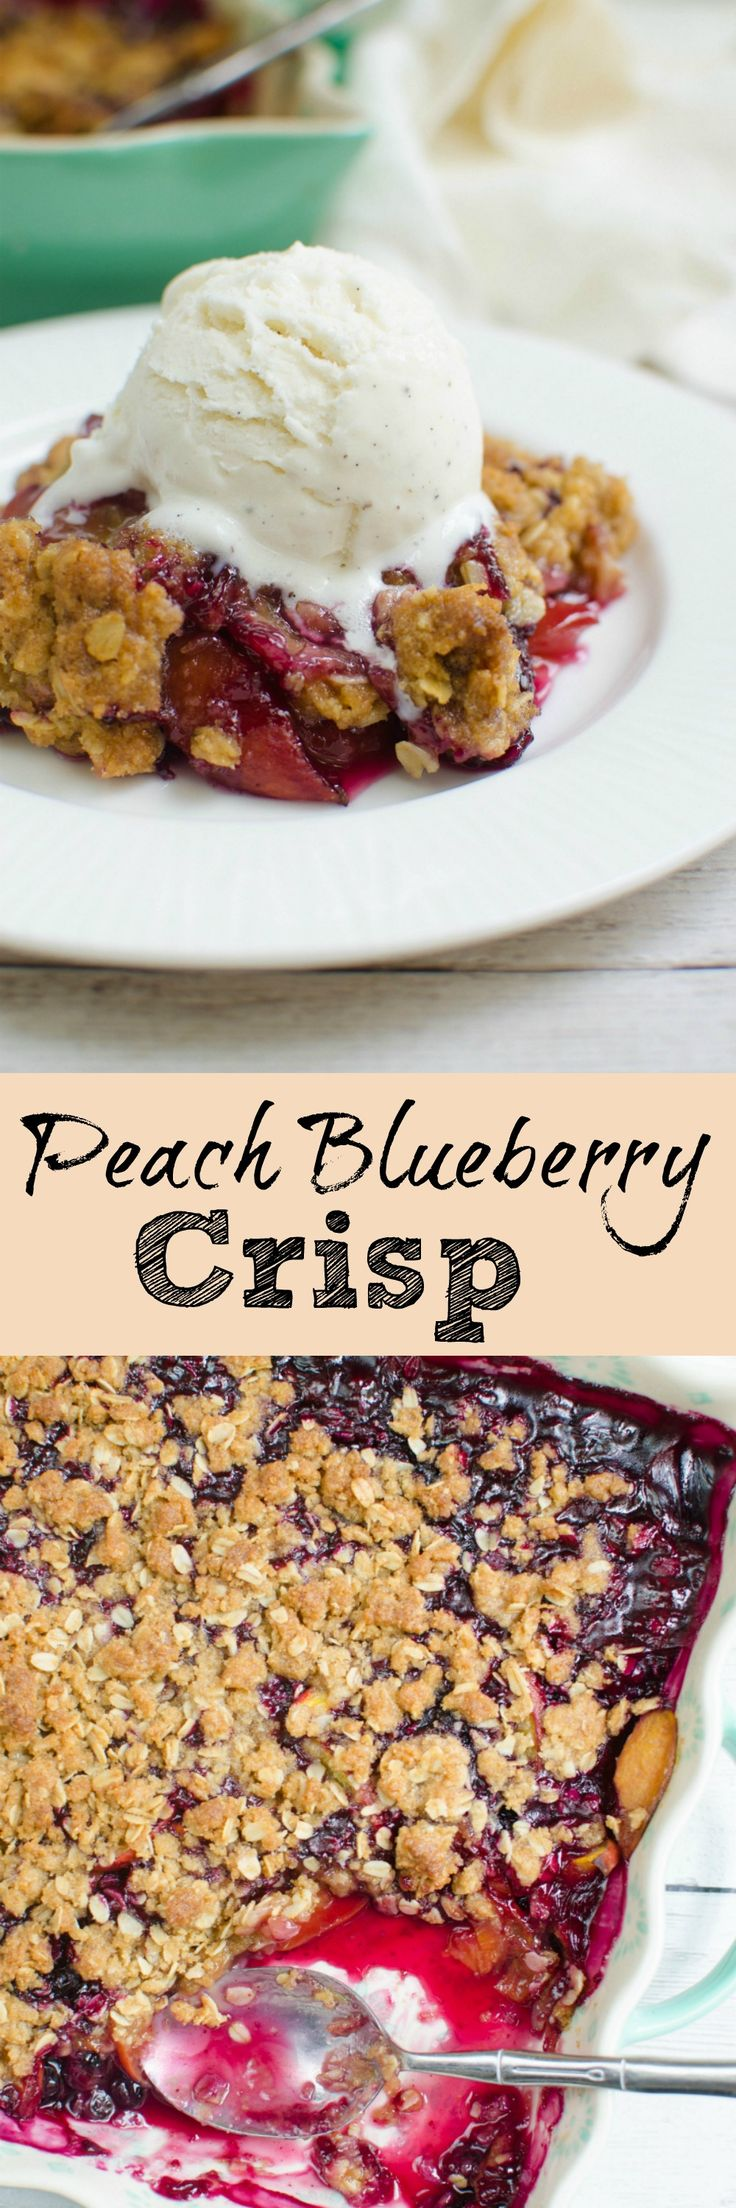 Peach Blueberry Crisp - quick and easy summer dessert! Fresh peaches and blueberries with a crunchy topping!